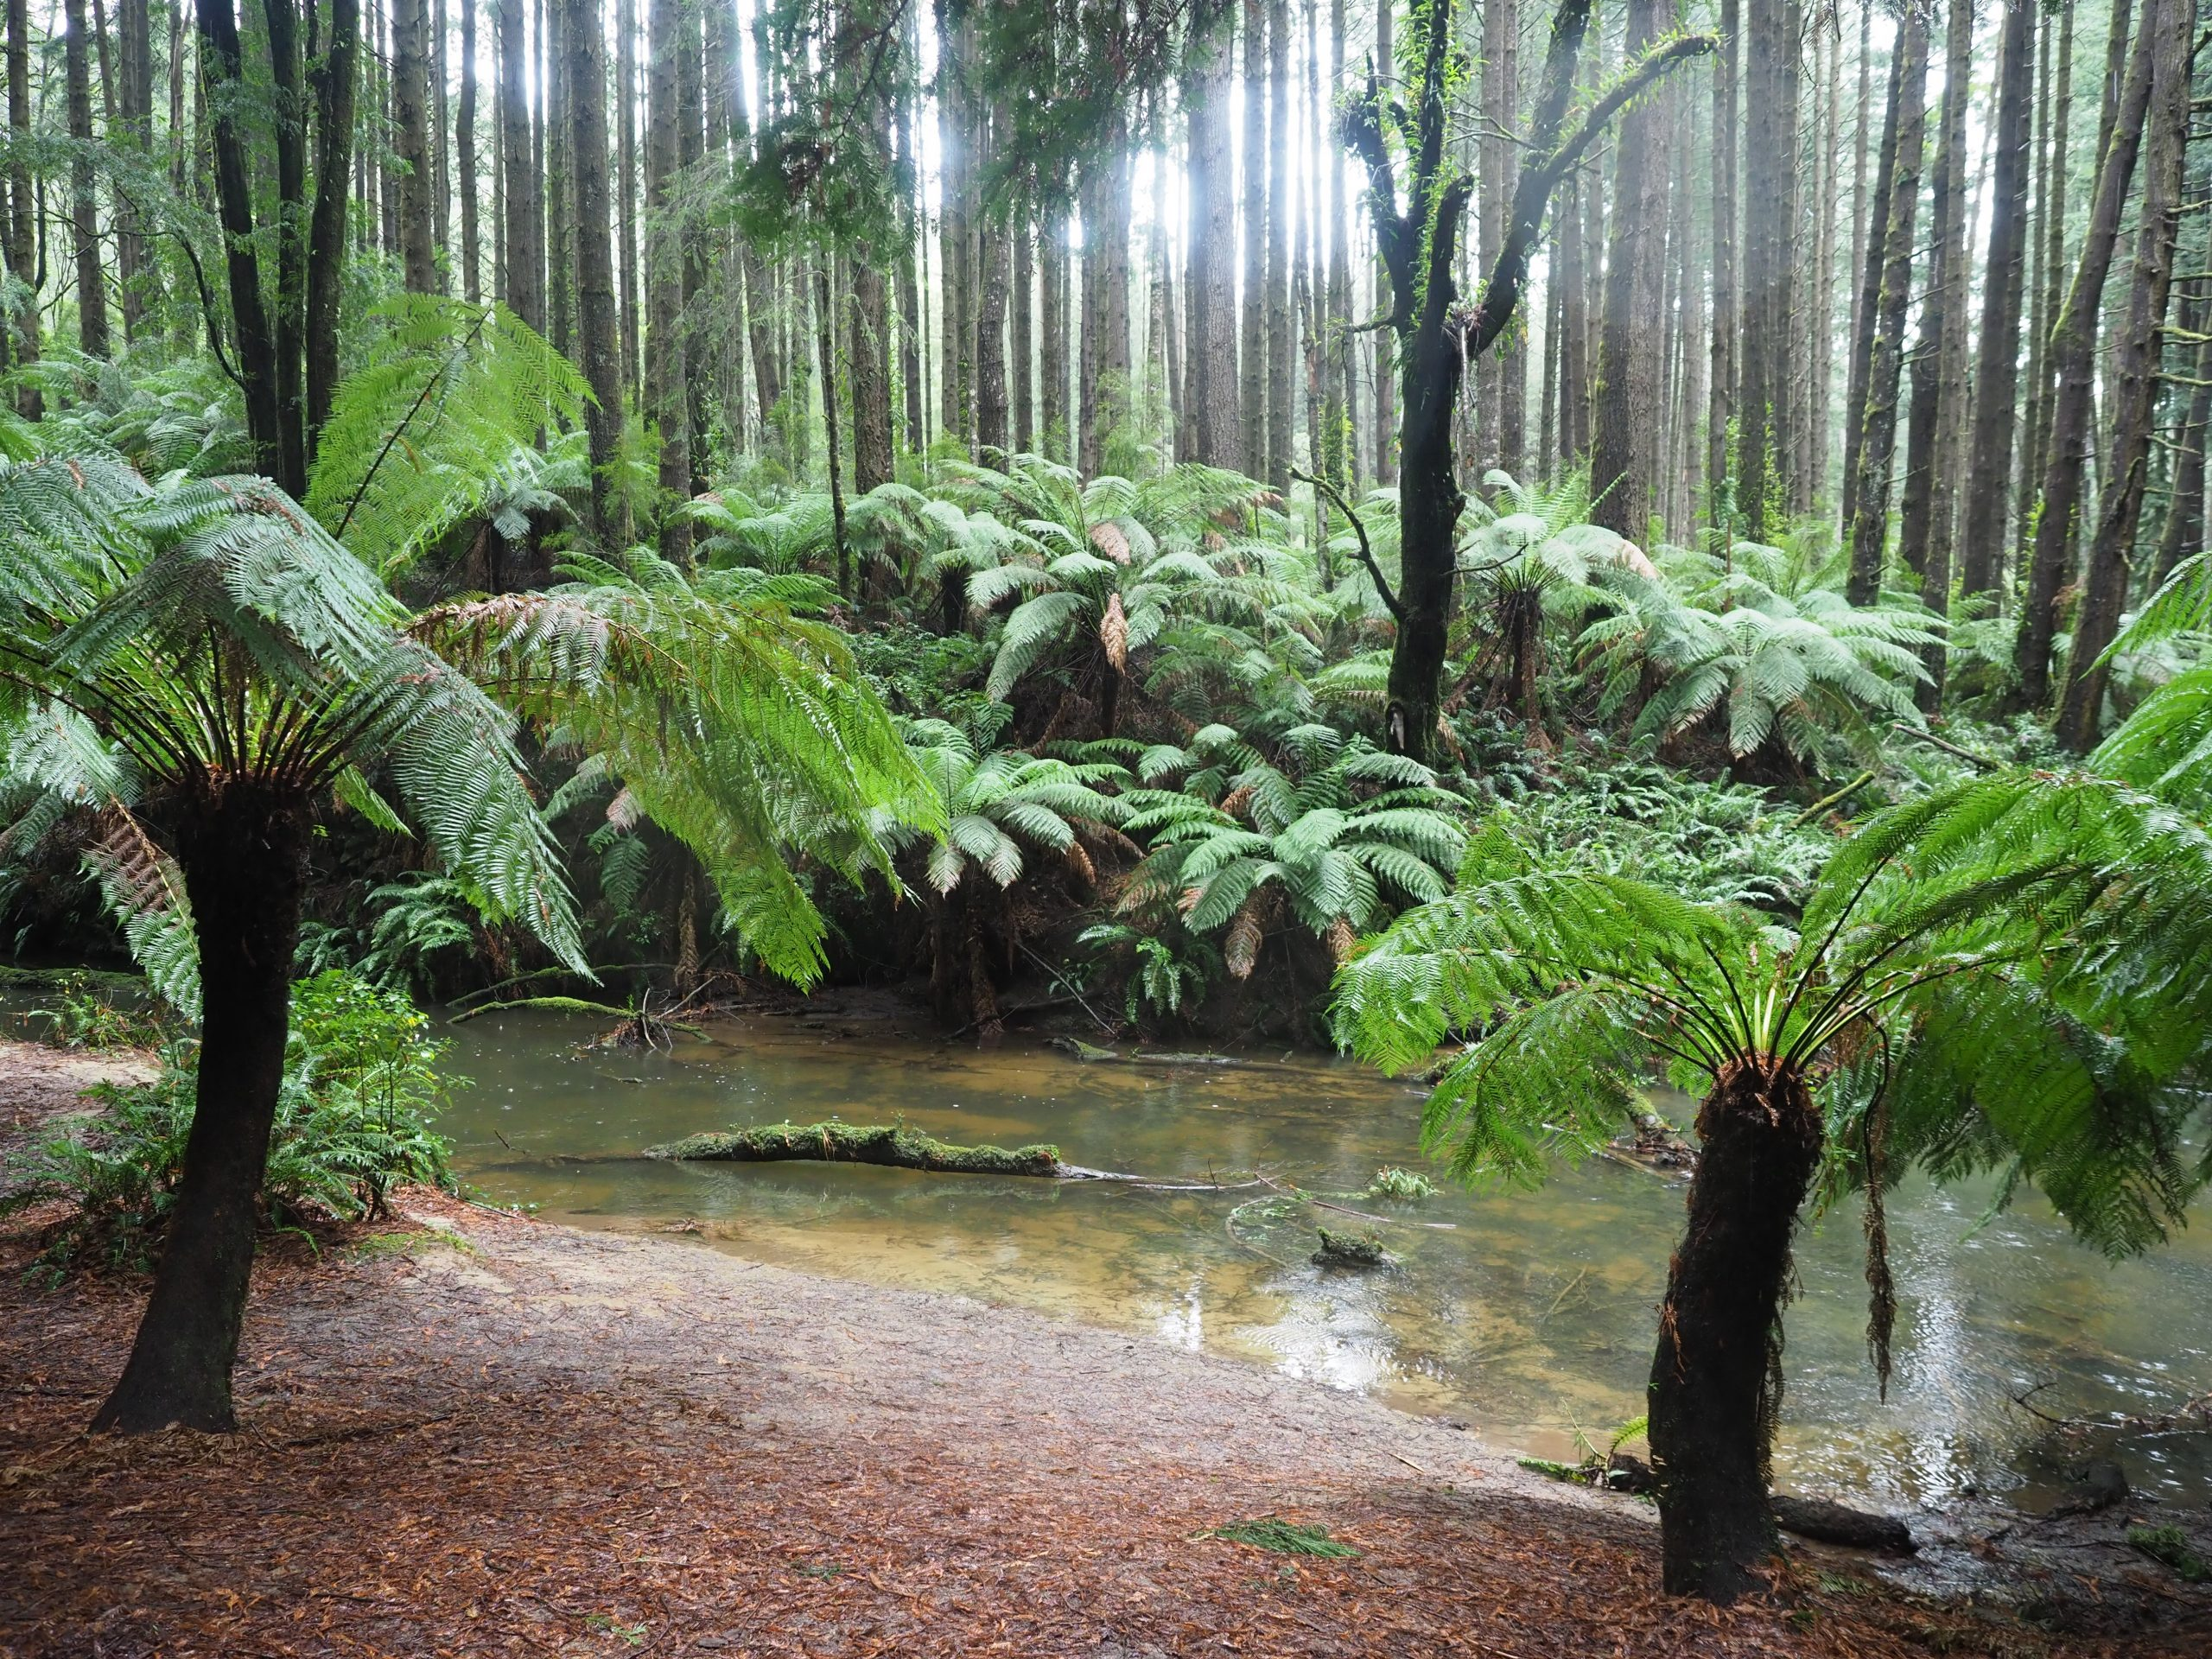 Pretty Creek with natural beach surrounded by tree ferns and gumtrees shot on location at the Redgums